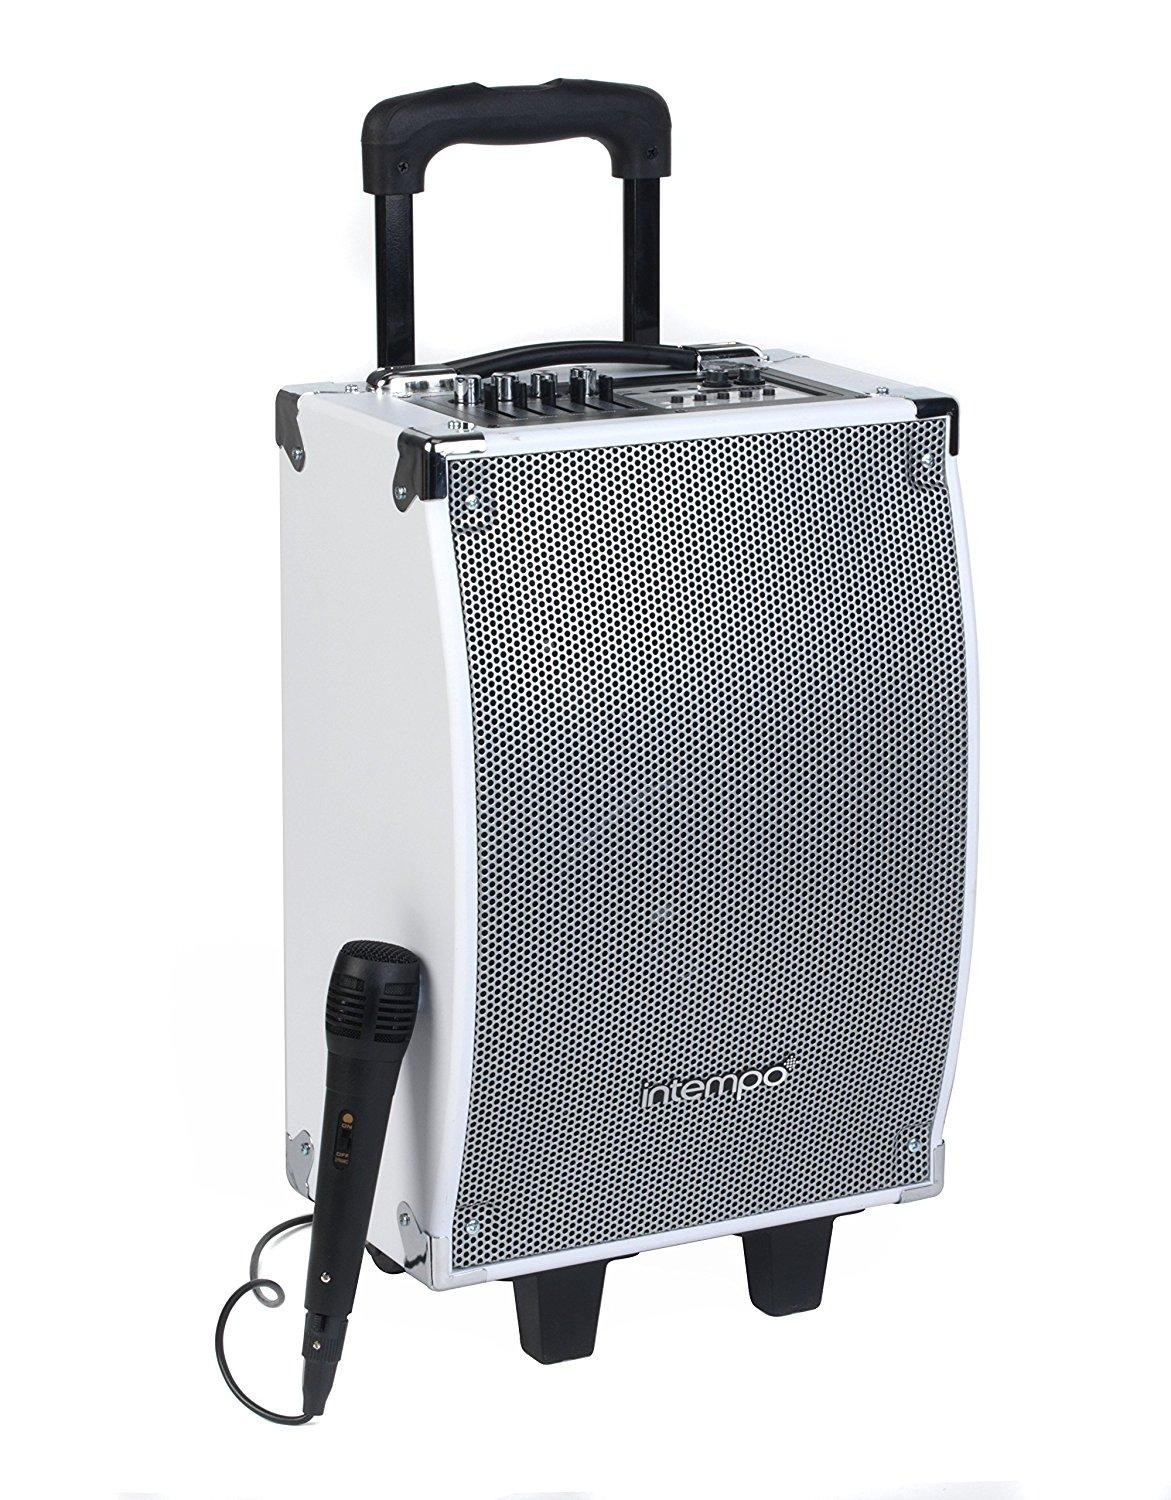 INTEMPO%20TAILGATE%20MUSIC%20SPEAKER.jpg